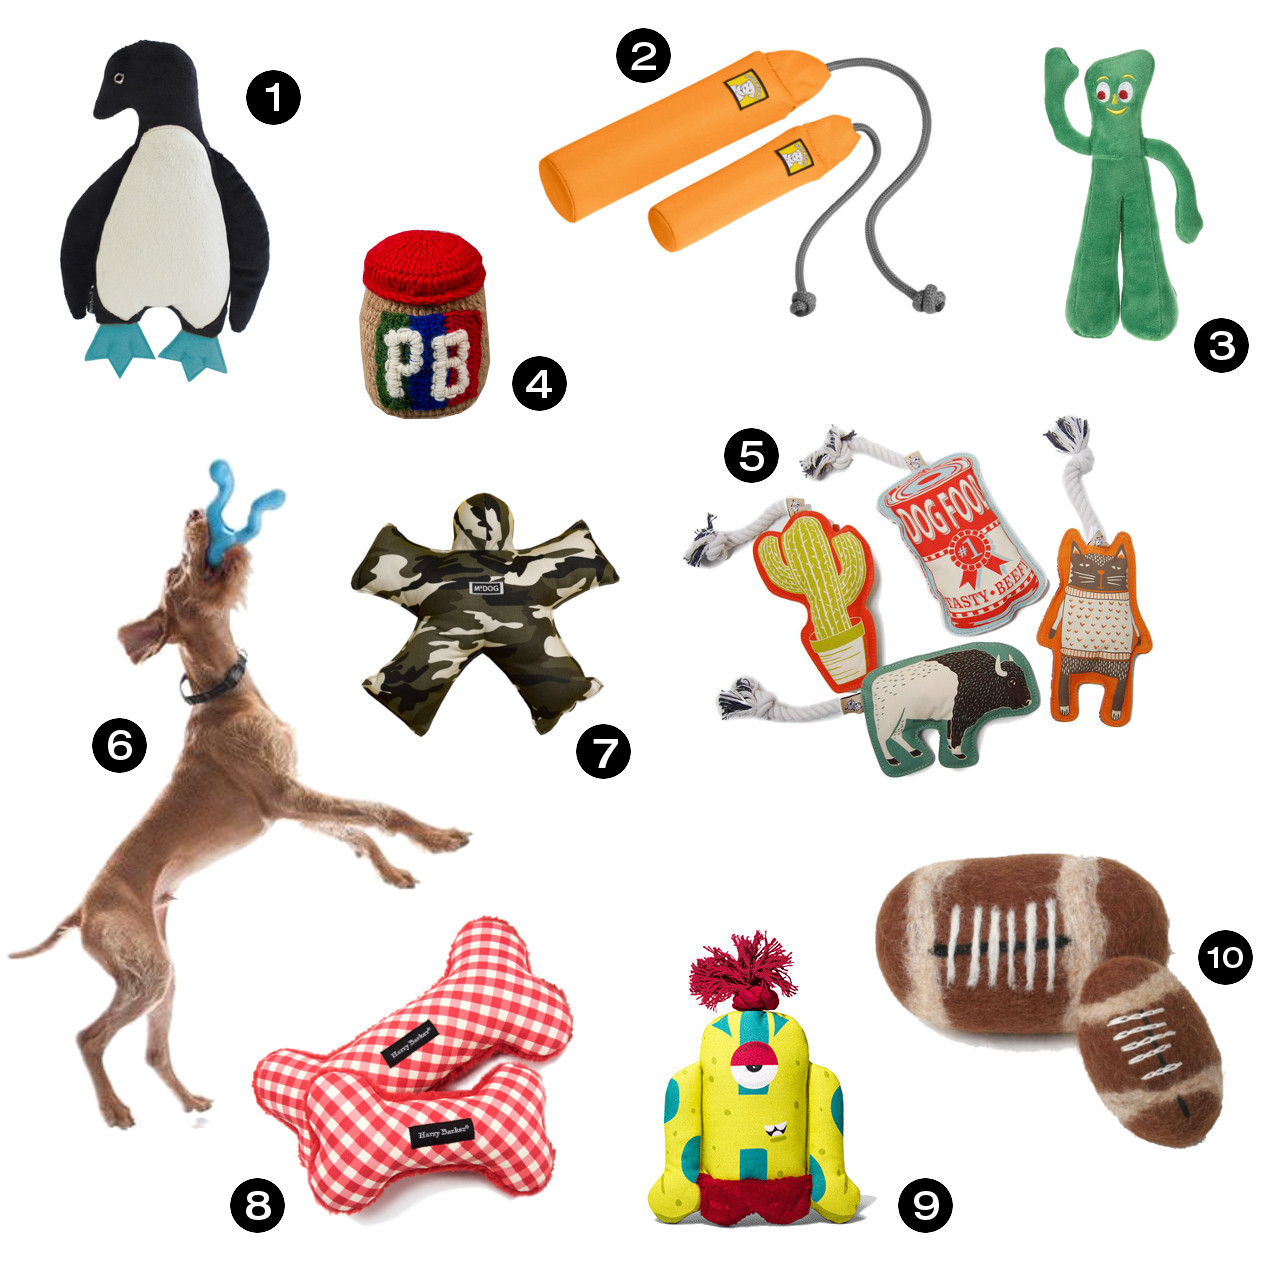 Dog Milk Holiday Gift Guide: 30 Awesome Toys for Dogs